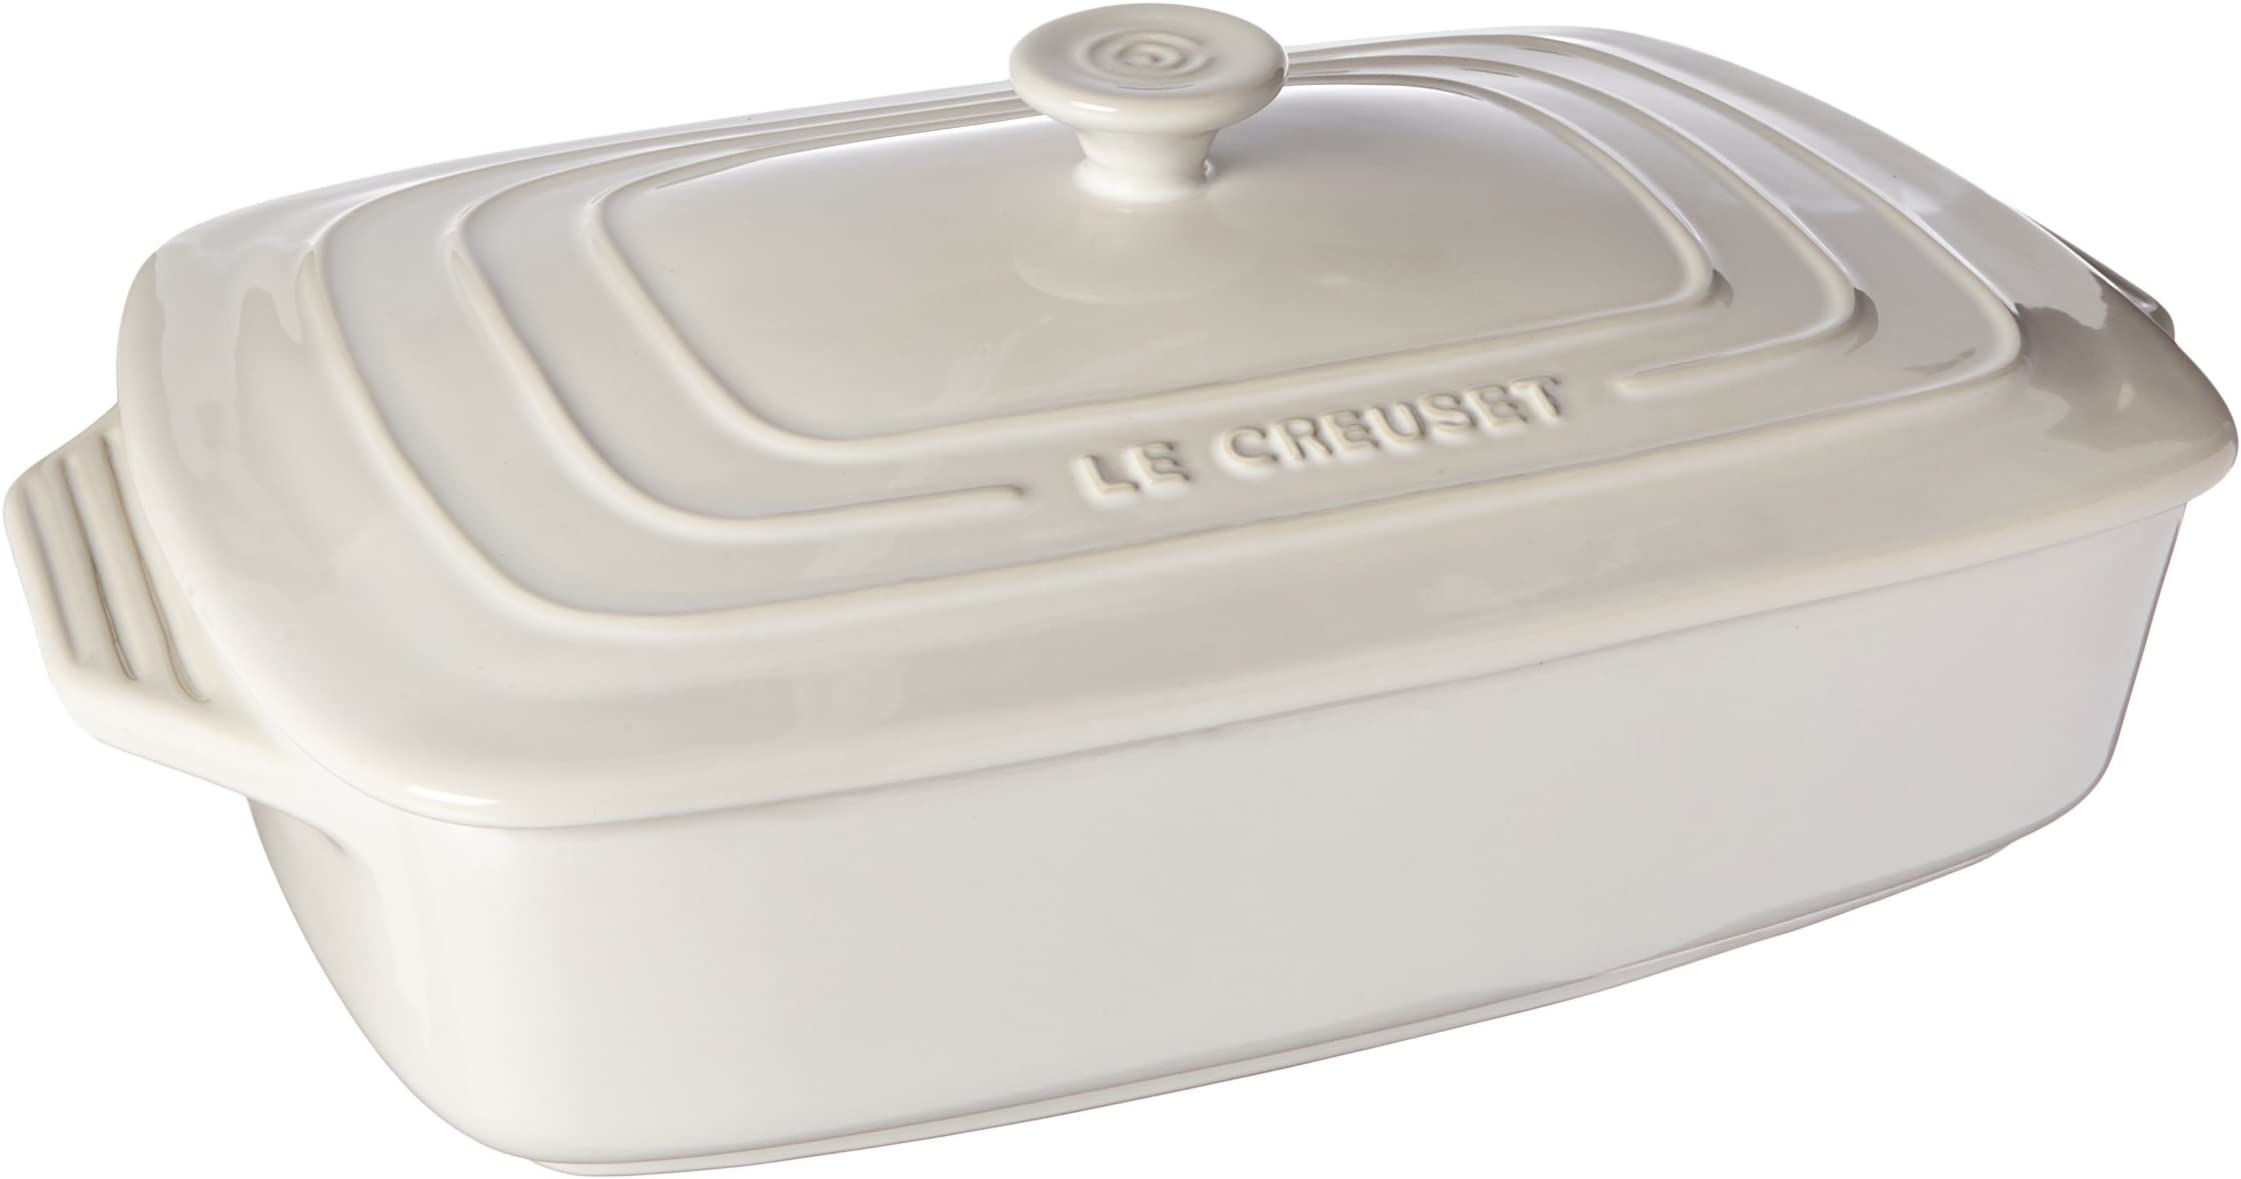 "Le Creuset Stoneware Covered Rectangular Casserole, 3.5 qt. (12.5"" x 8.5""), White"